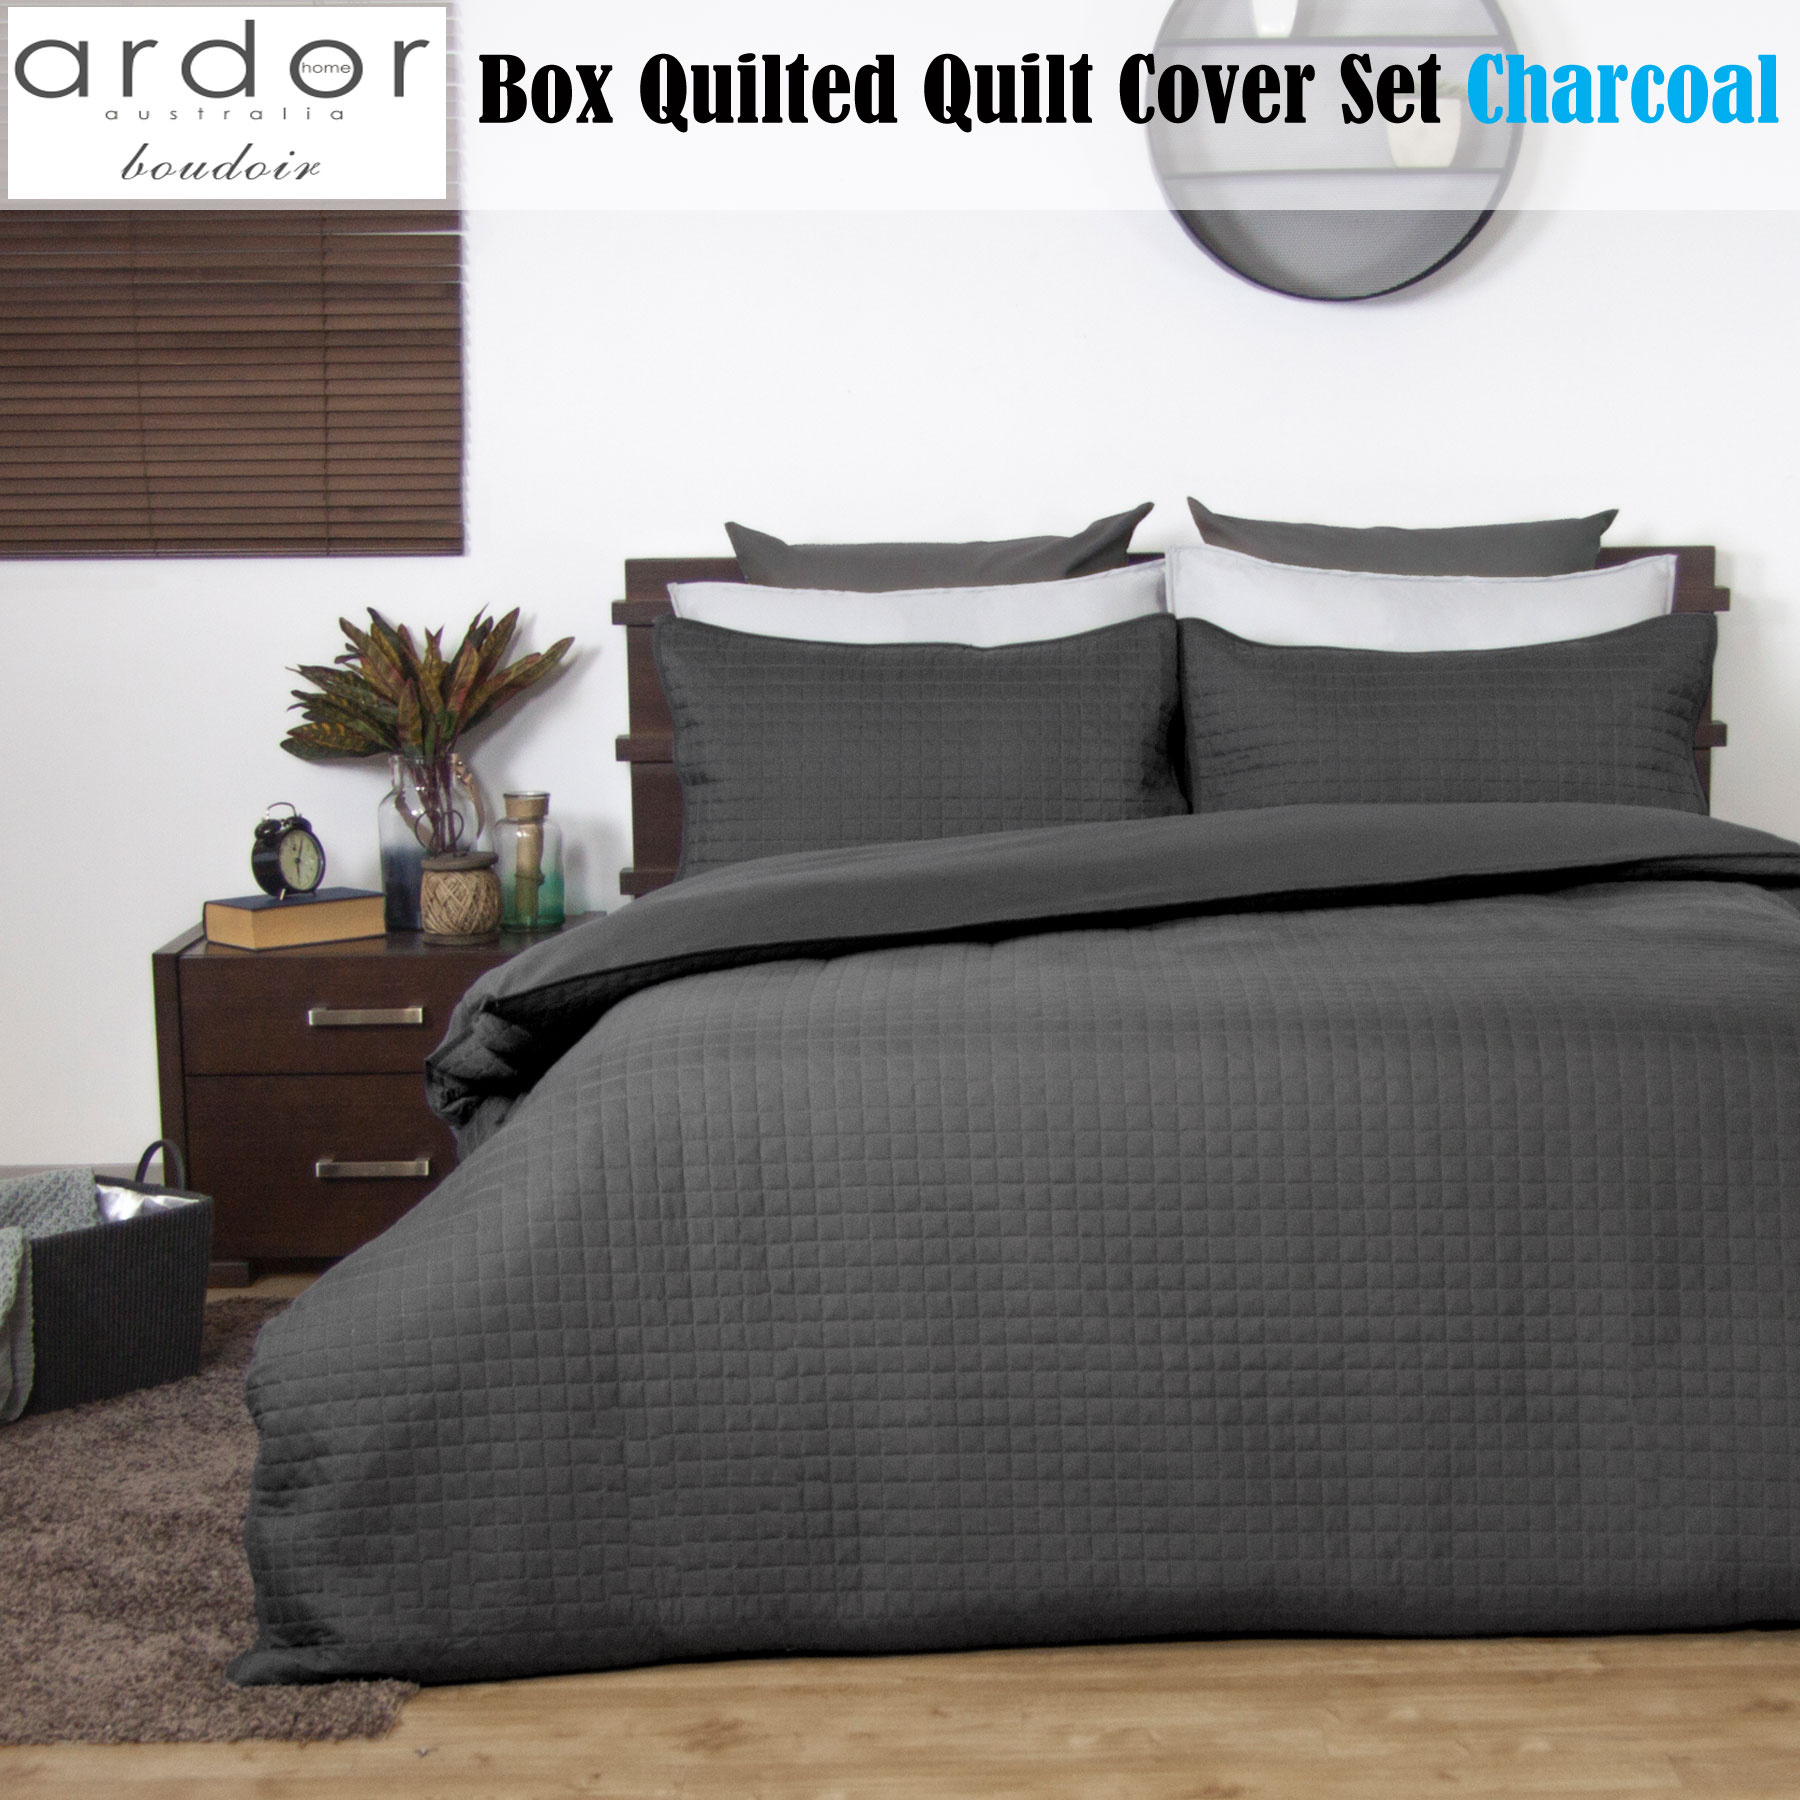 Boudoir Box Quilted Quilt Doona Duvet Cover Set Charcoal By Ardor